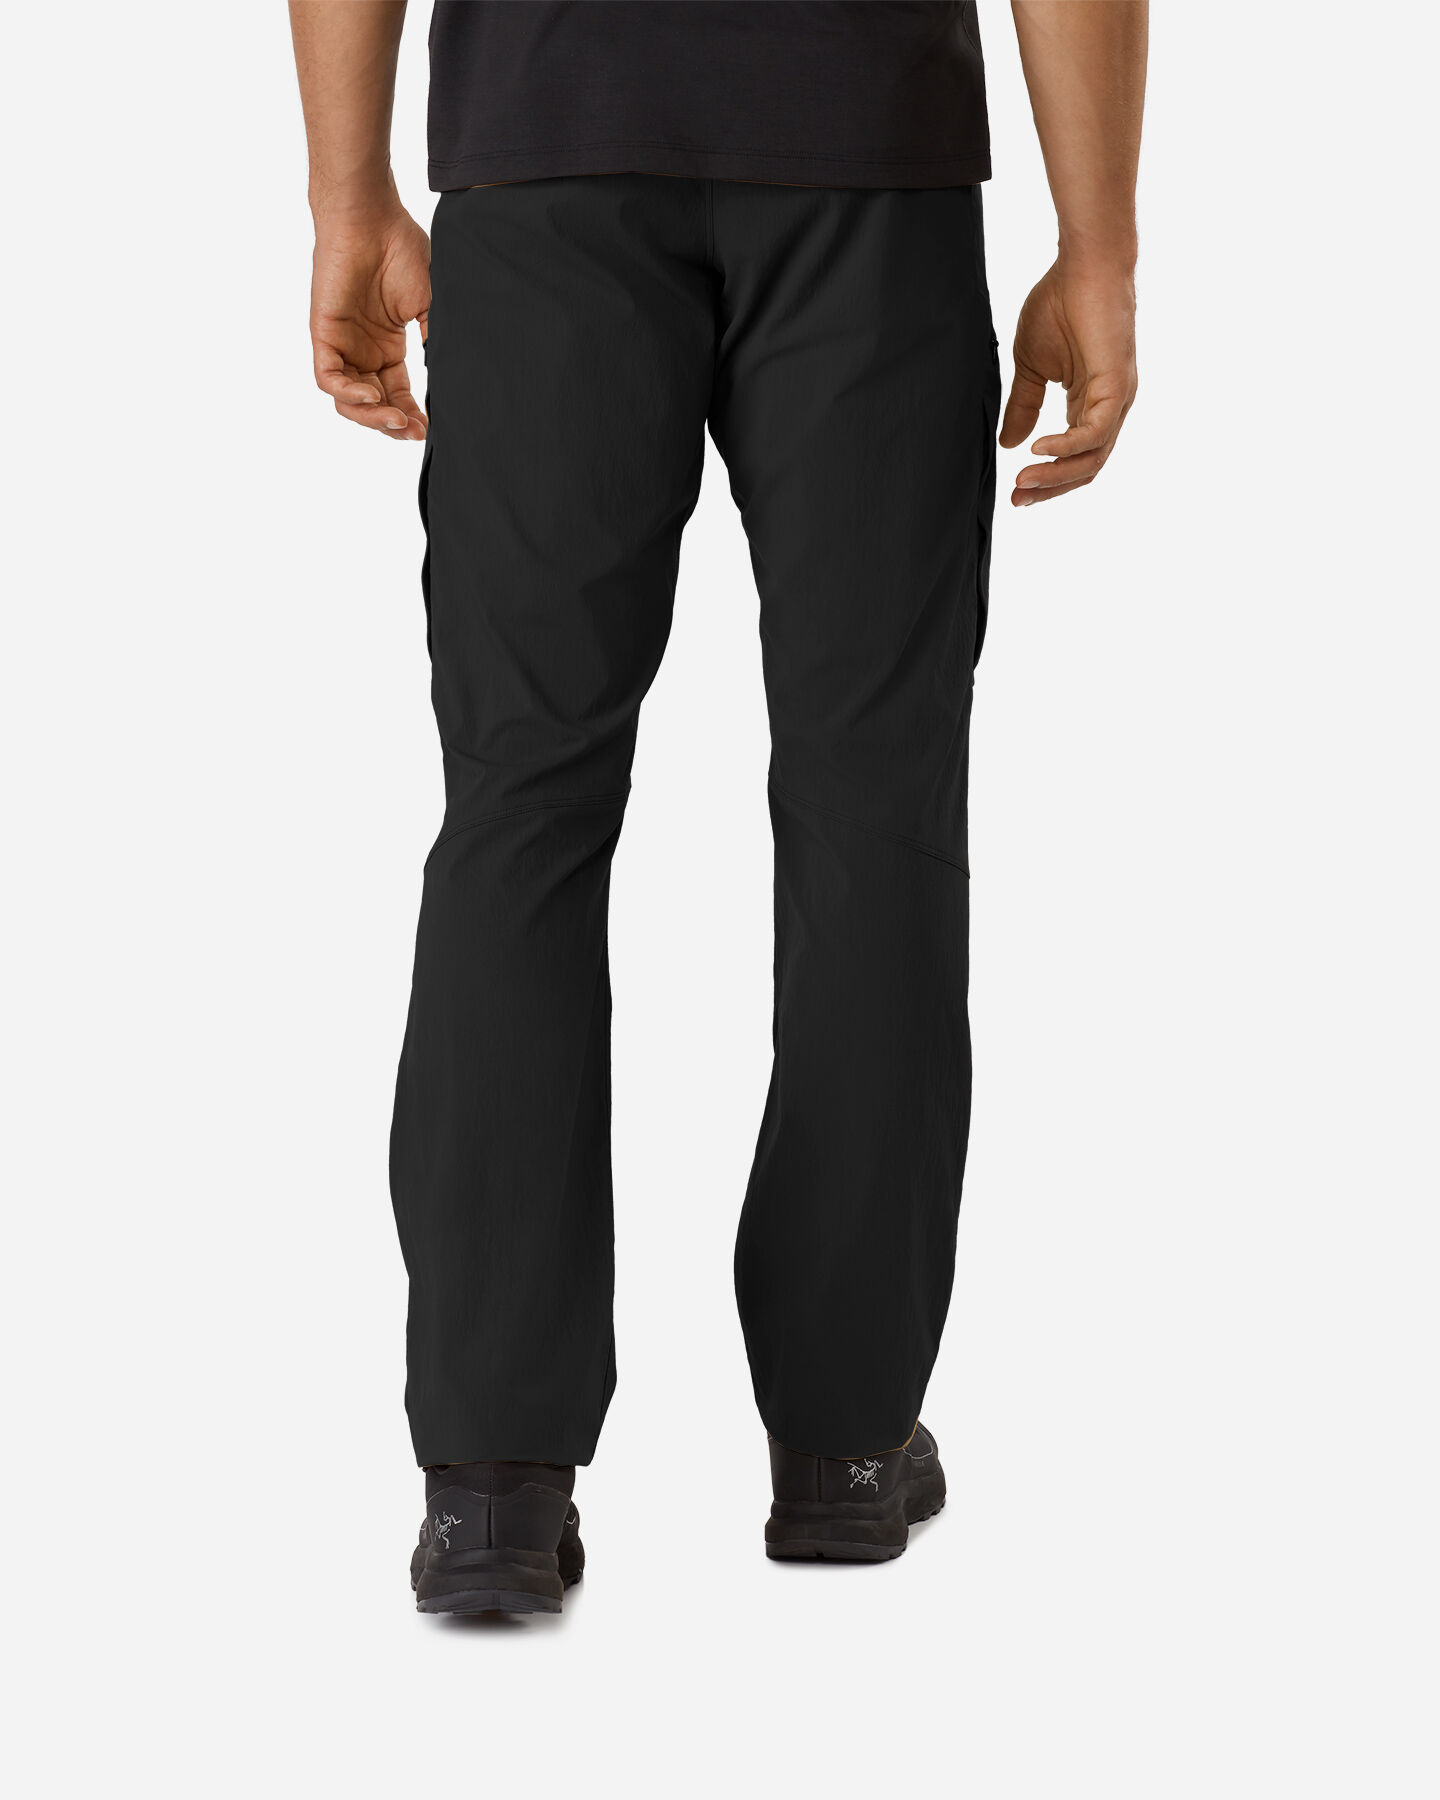 Pantalone outdoor ARC'TERYX PALISADE M S4075200 scatto 2